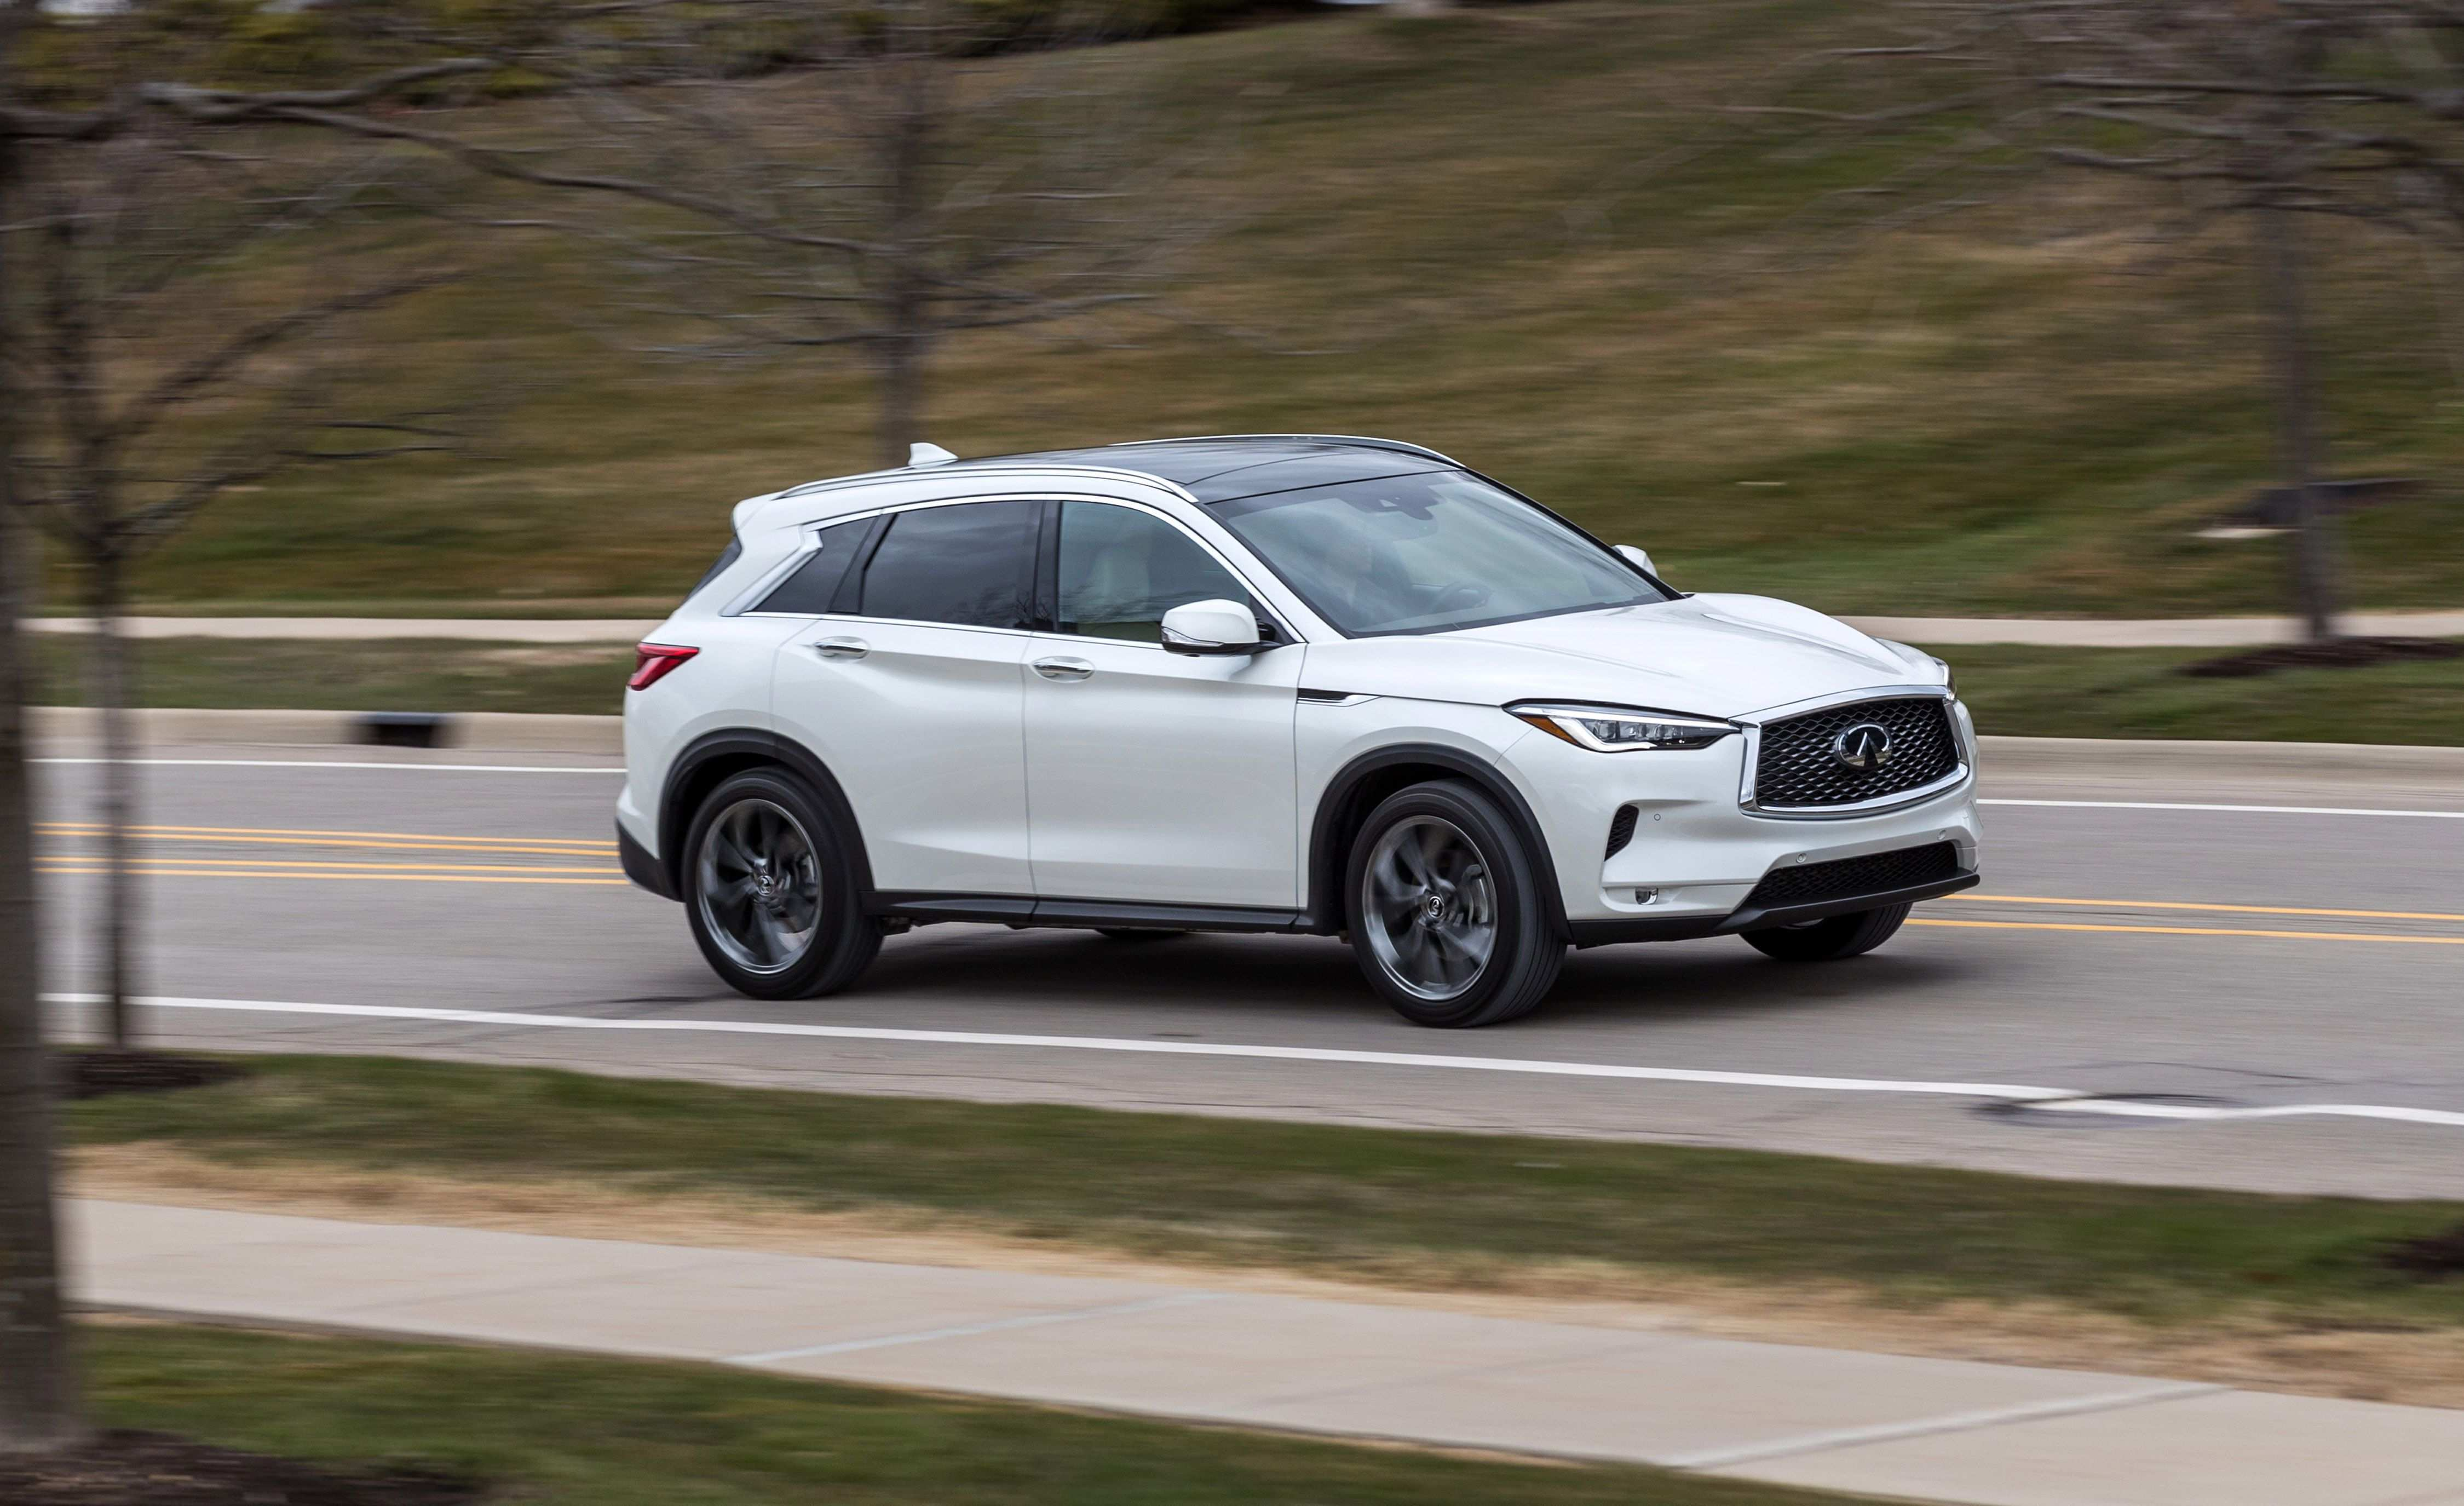 79 New 2019 Infiniti Qx50 Wiki Exterior And Interior